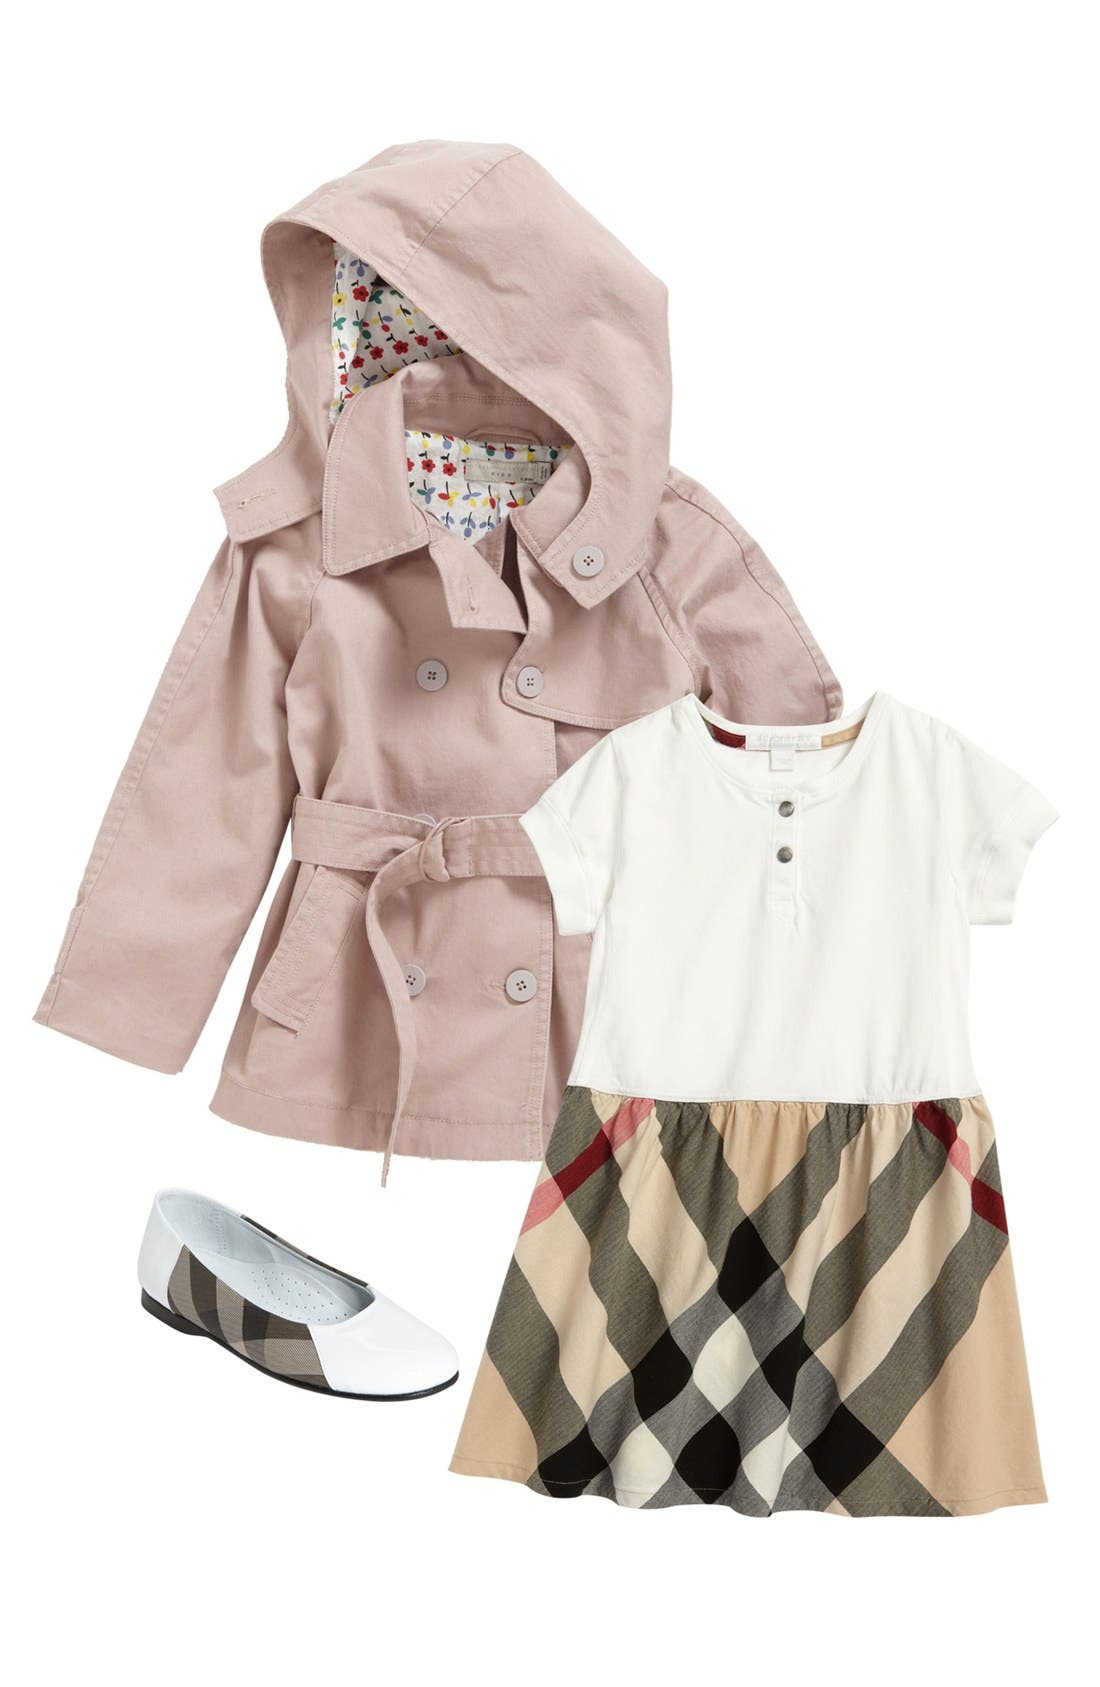 Main Image - Burberry Dress & Stella McCartney Trench Coat (Toddler)